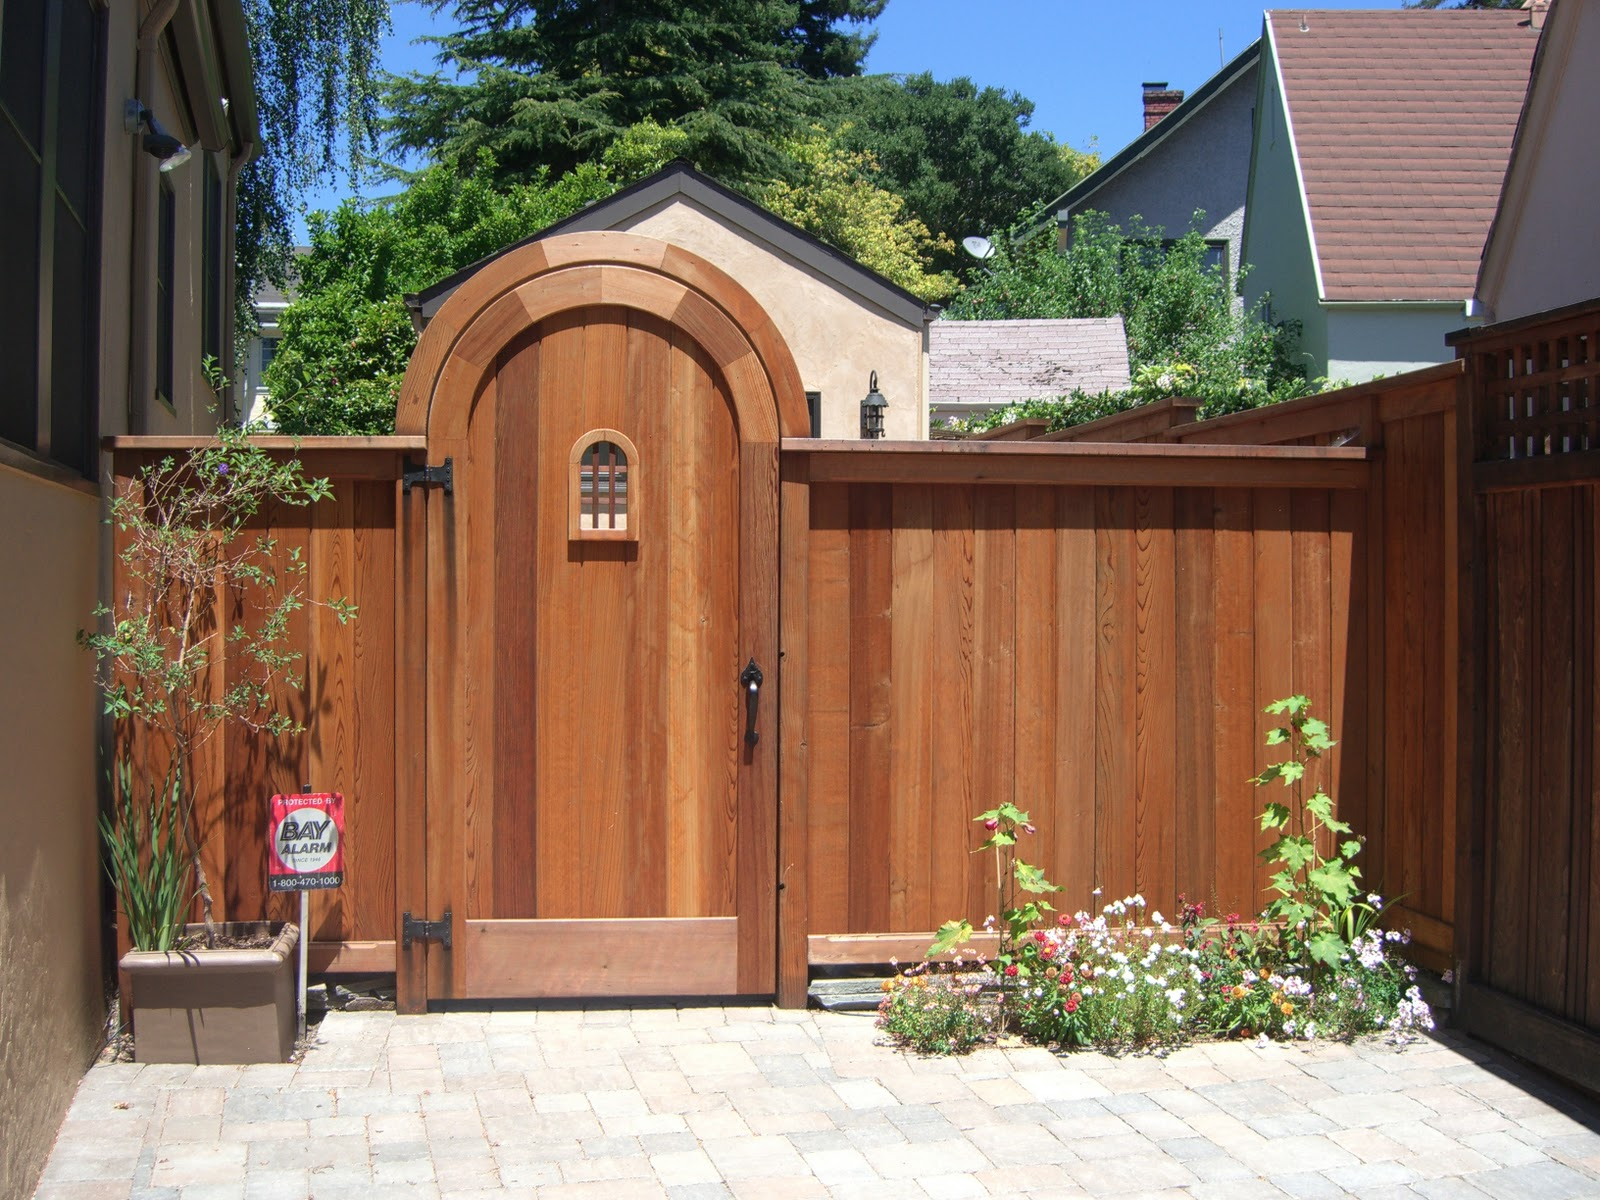 Home Design Gate Ideas: MacGregor Construction: Curved 4x4 Header And Gate